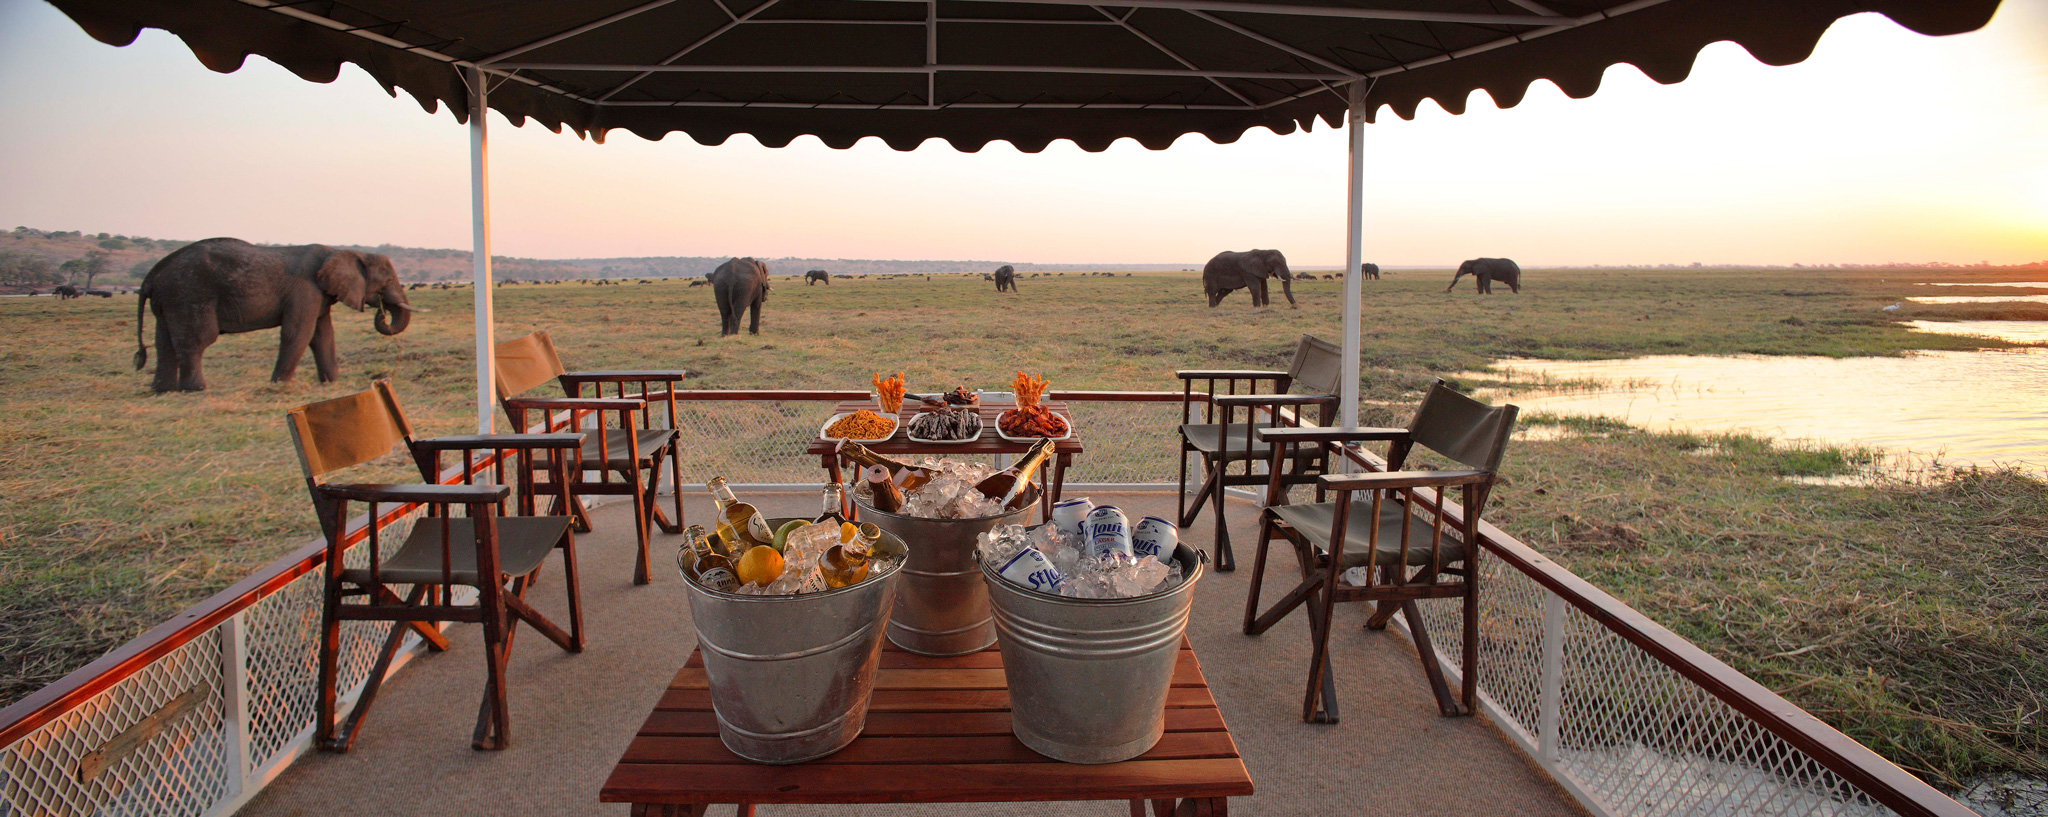 Sundowners-with-elephants-in-Botswana